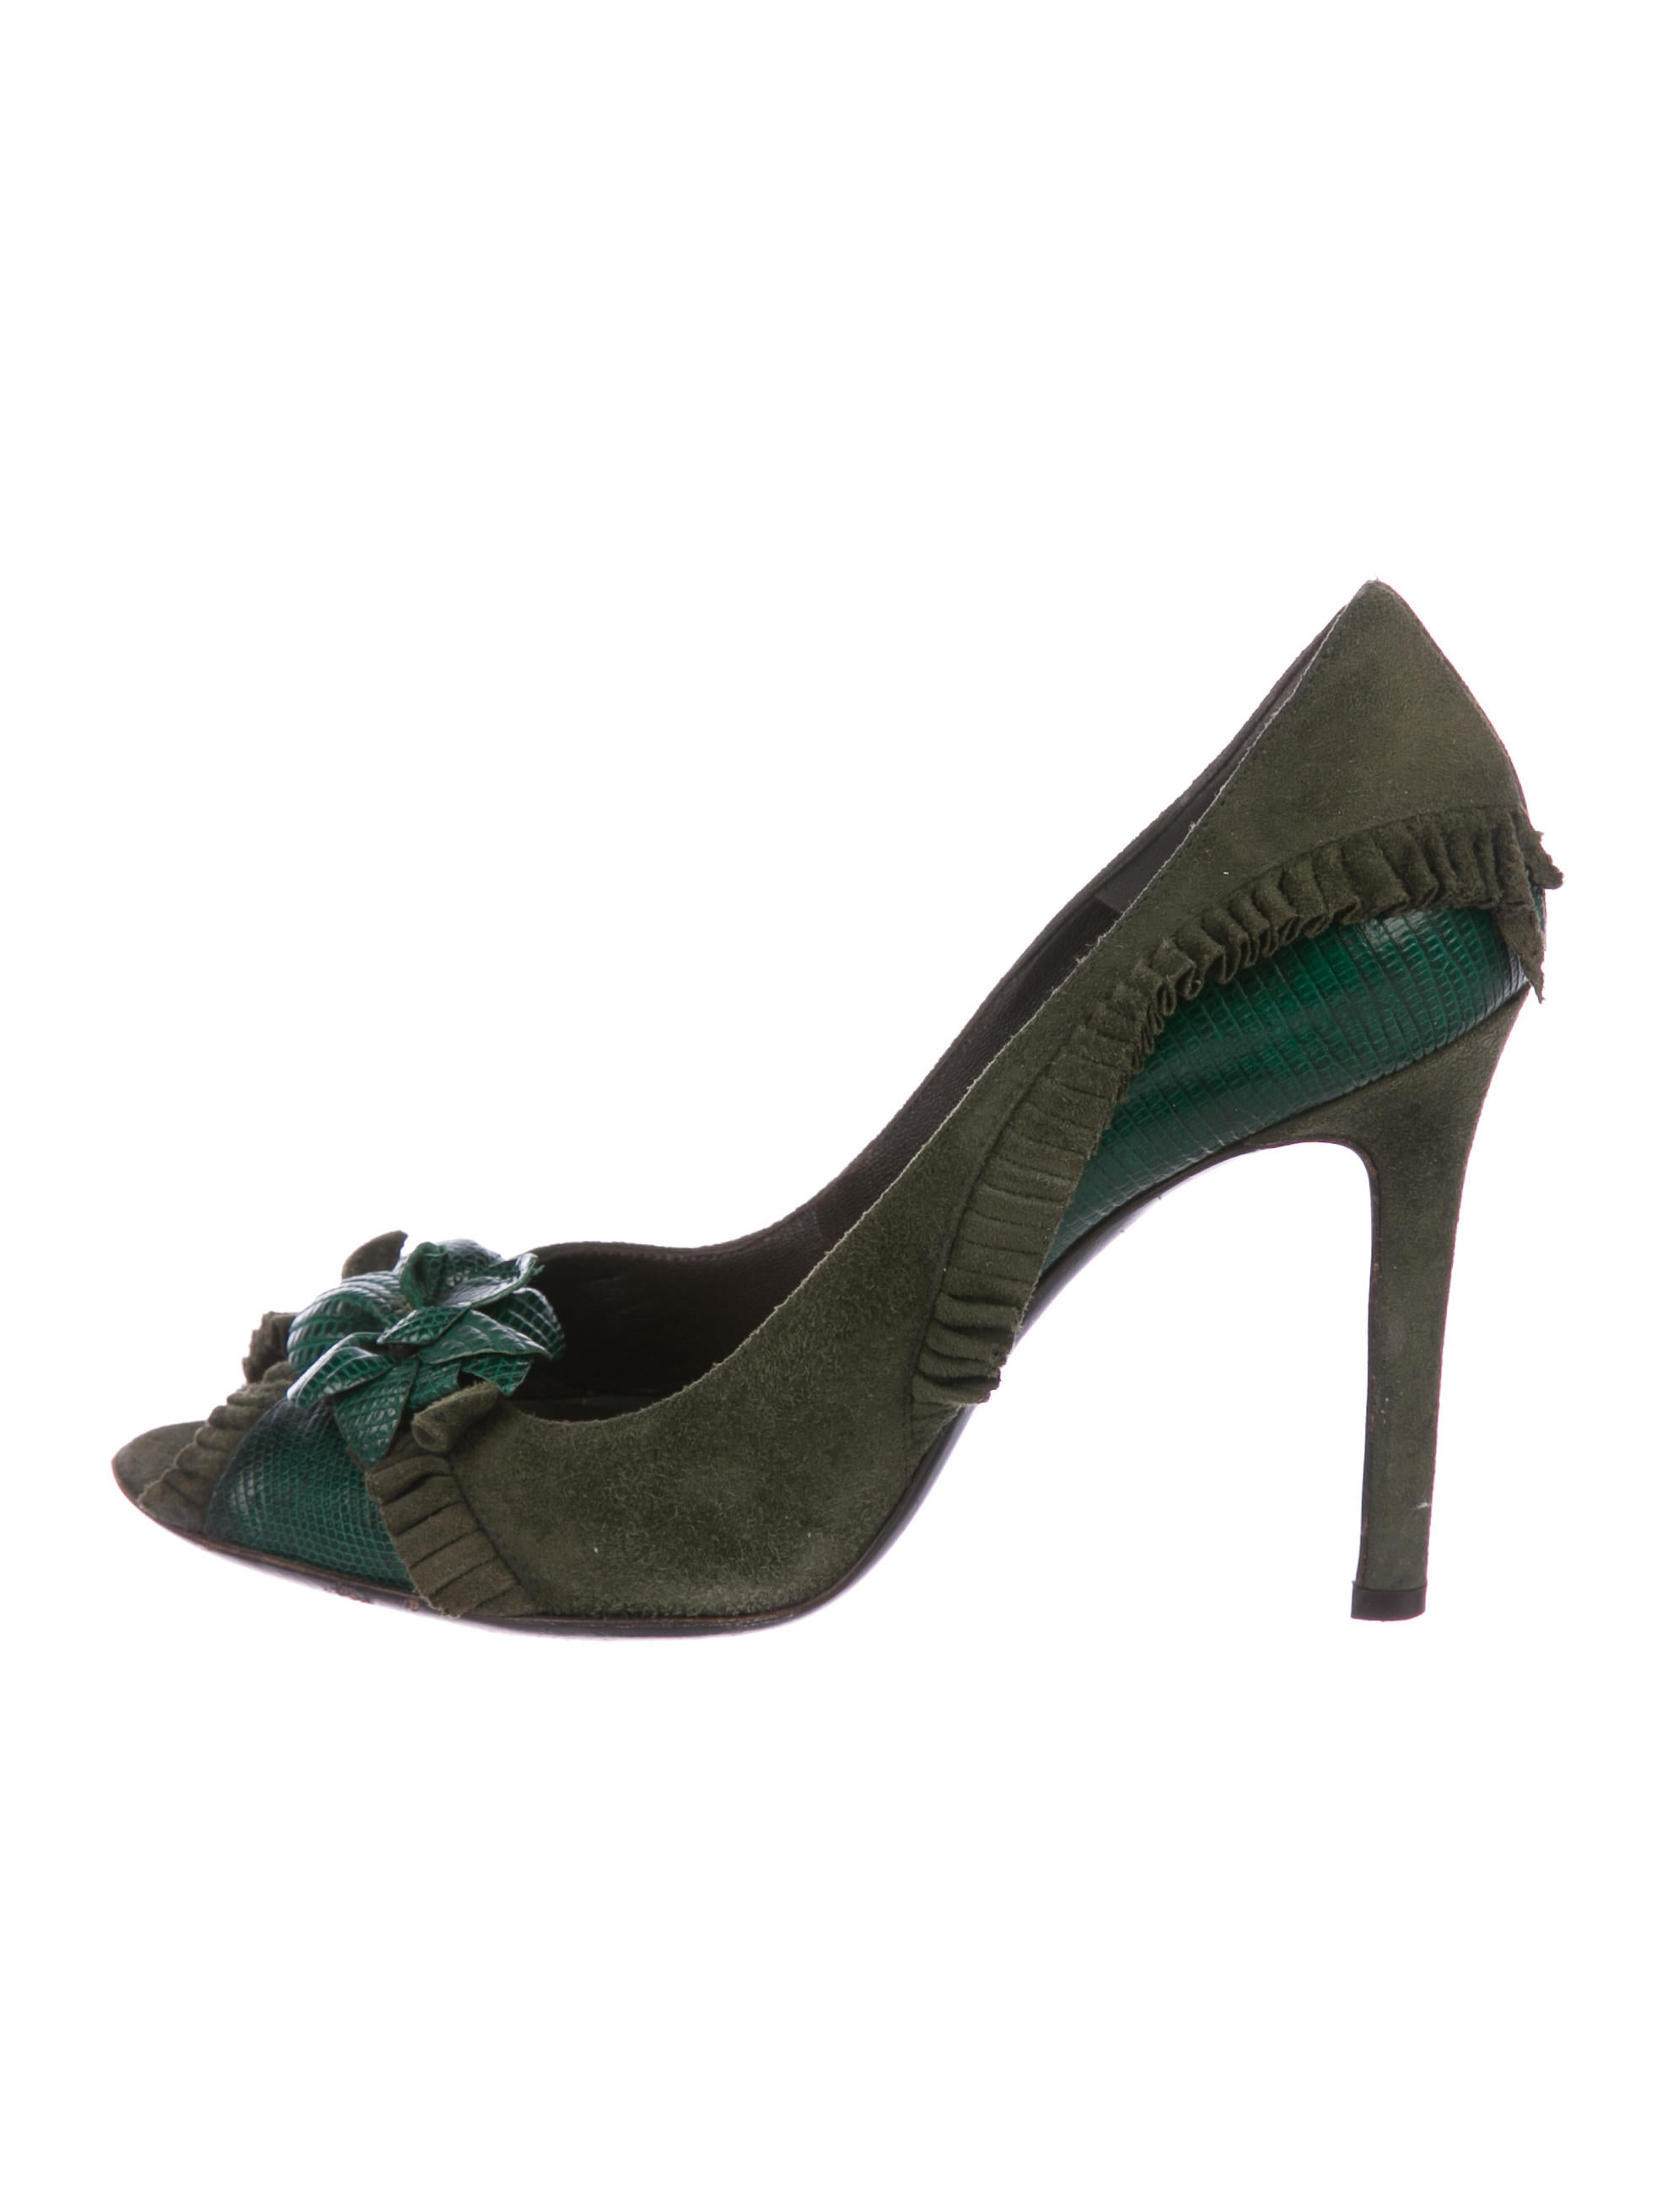 Red pre order eastbay Valentino Lizard-Trimmed Embellished Pumps buy cheap latest collections best prices cheap online M9h91OJlp